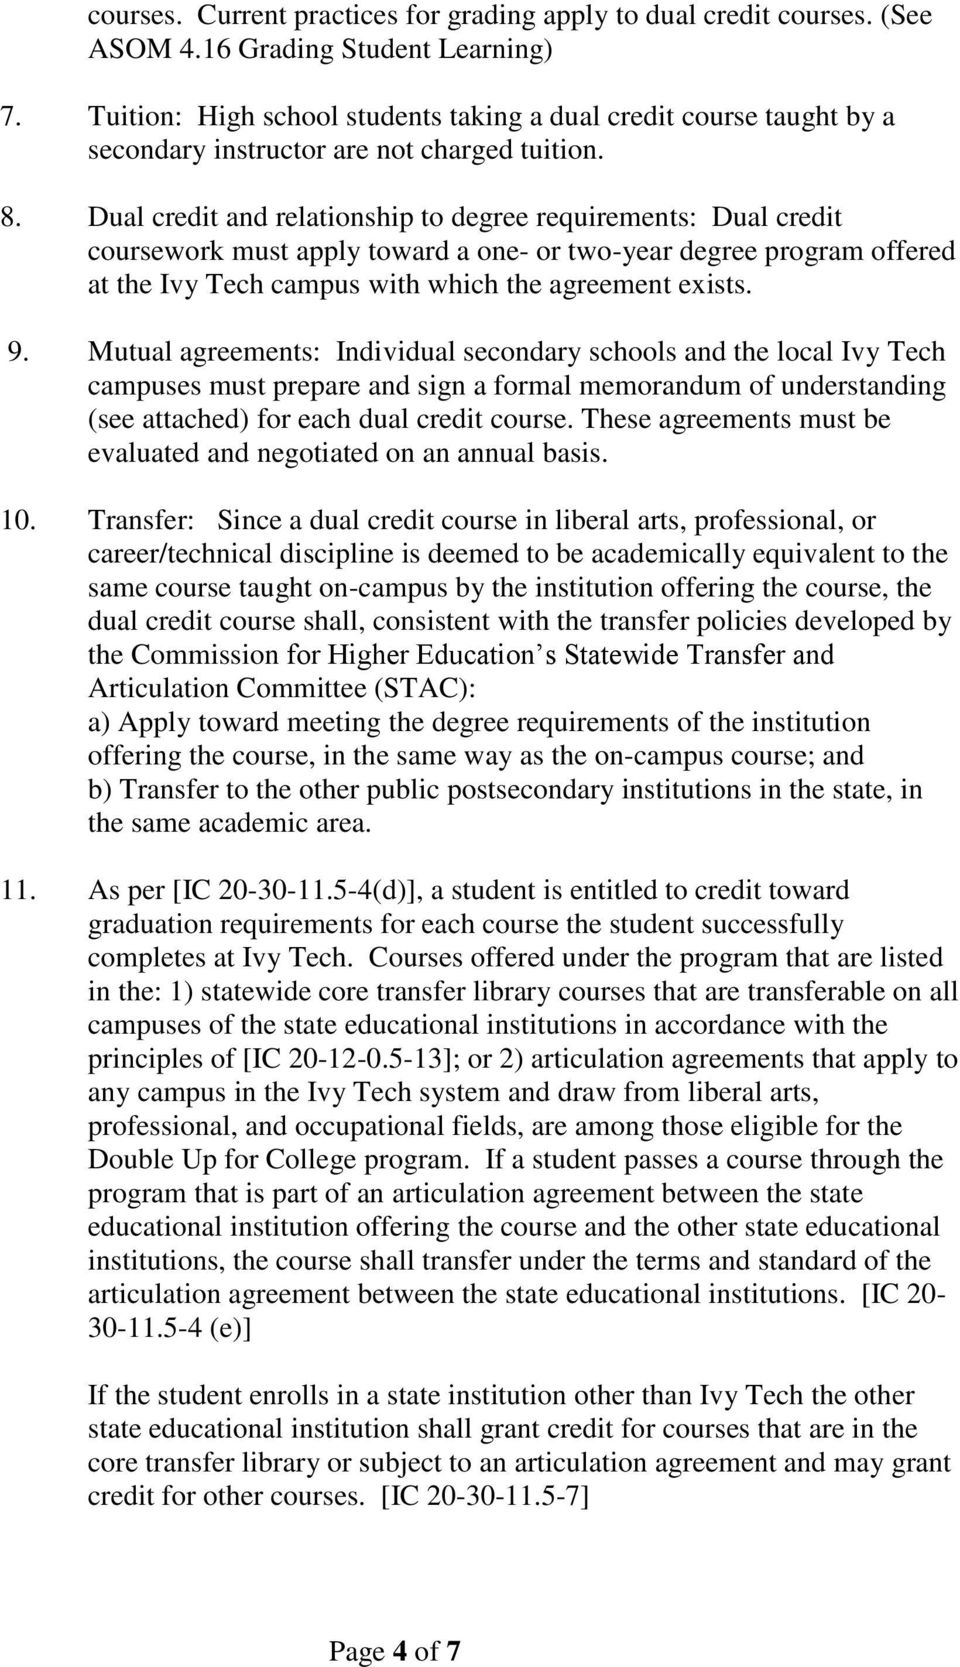 Dual credit and relationship to degree requirements: Dual credit coursework must apply toward a one- or two-year degree program offered at the Ivy Tech campus with which the agreement exists. 9.